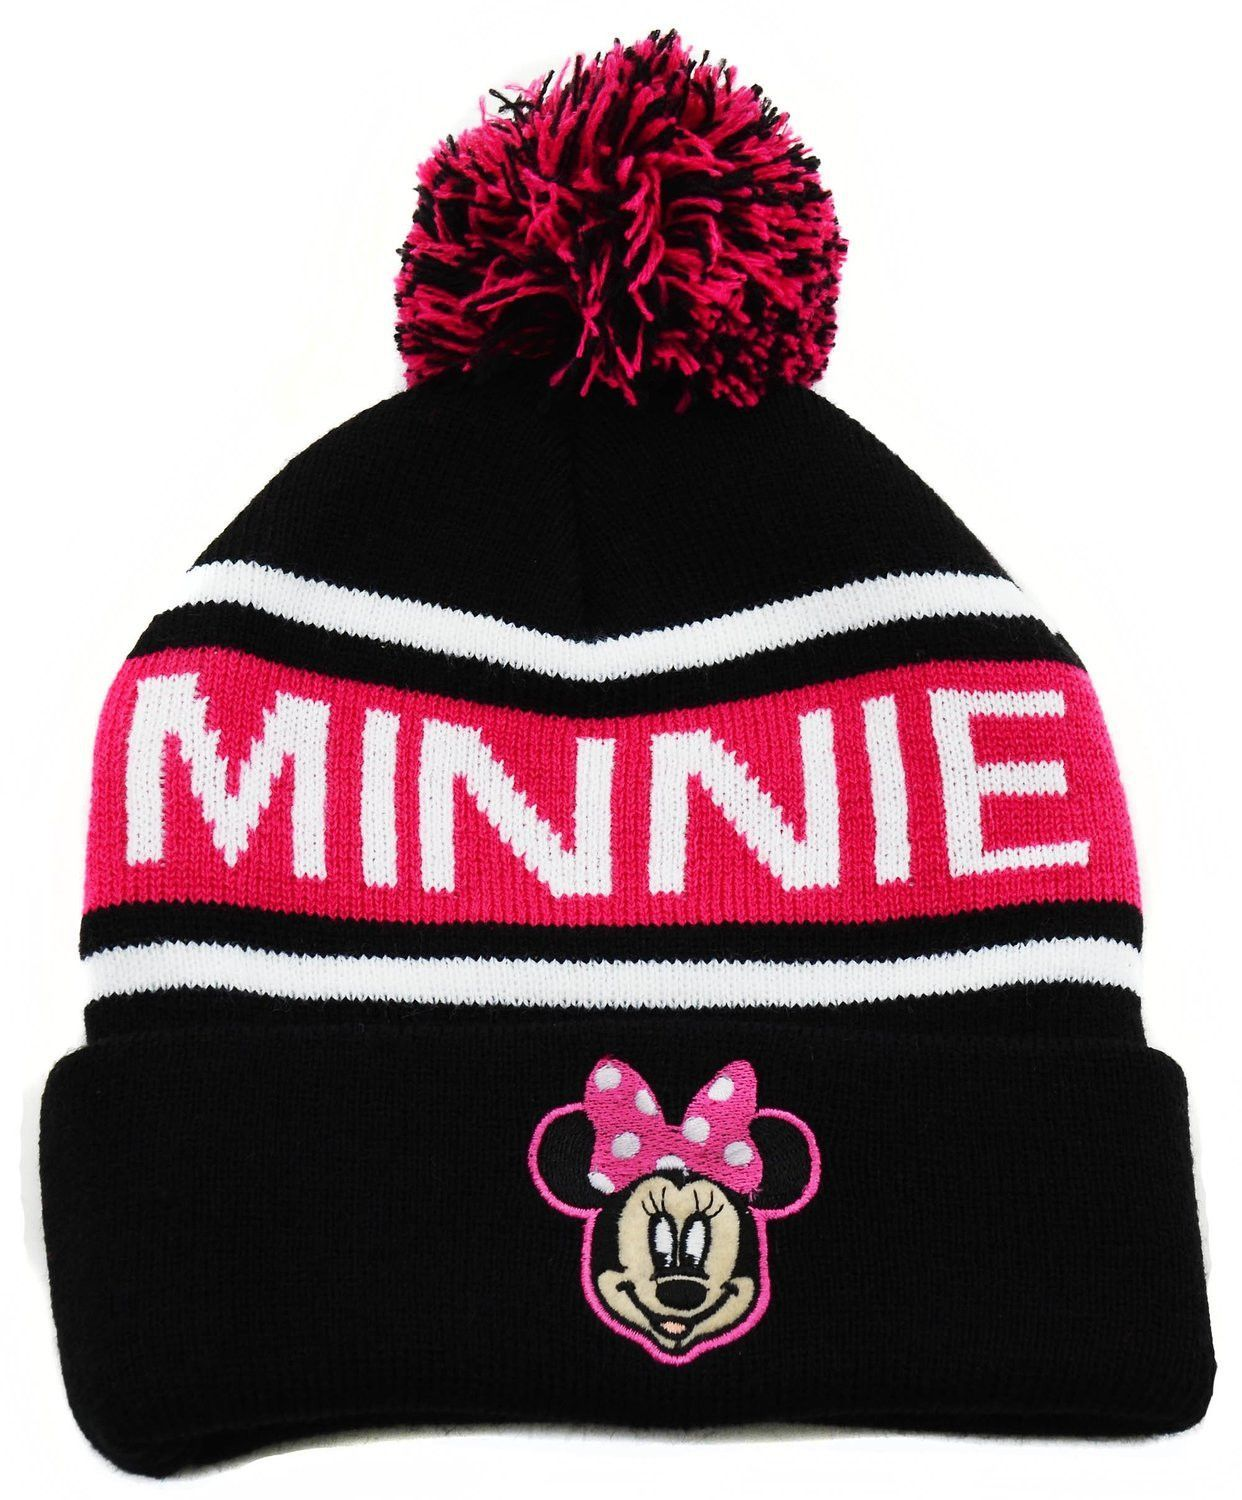 981205a7d5b Pink Black Striped Disney Minnie Mouse Pom Cold Weather Beanie Hat ...